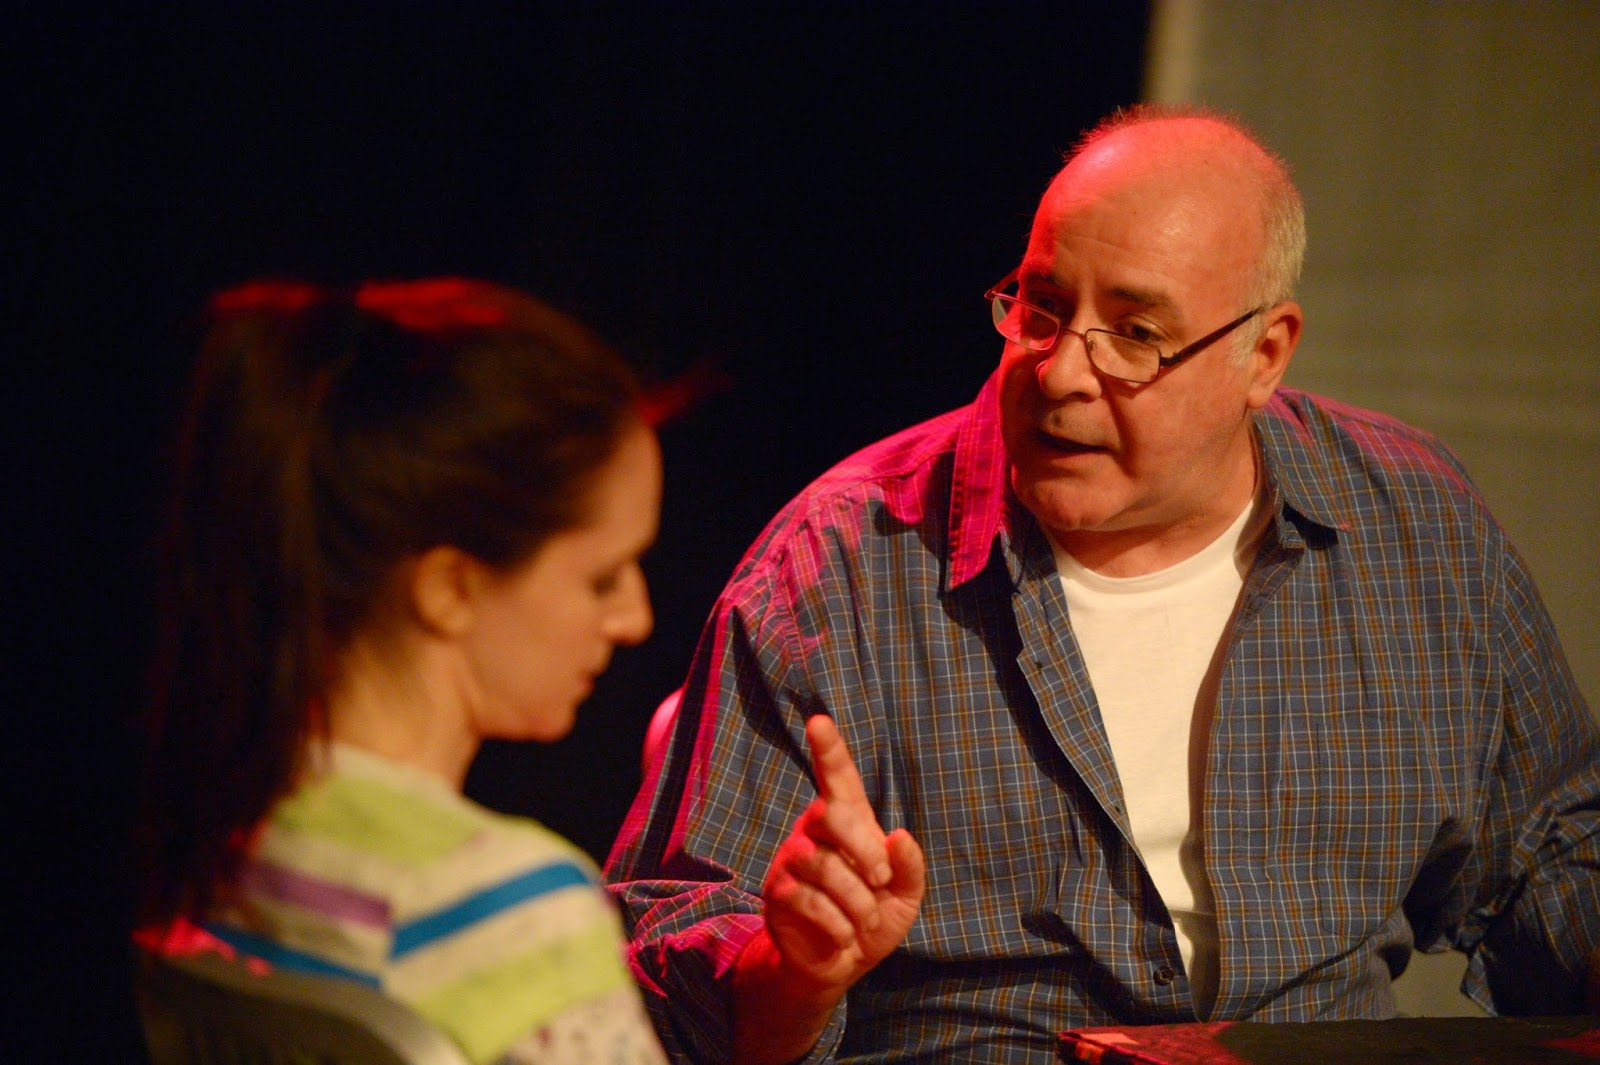 com the blood brothers present bedlam nightmares playwright mariah maccarthy meets that challenge the extremely disturbing and surprisingly gore daddy s girl all george tom reid wants to